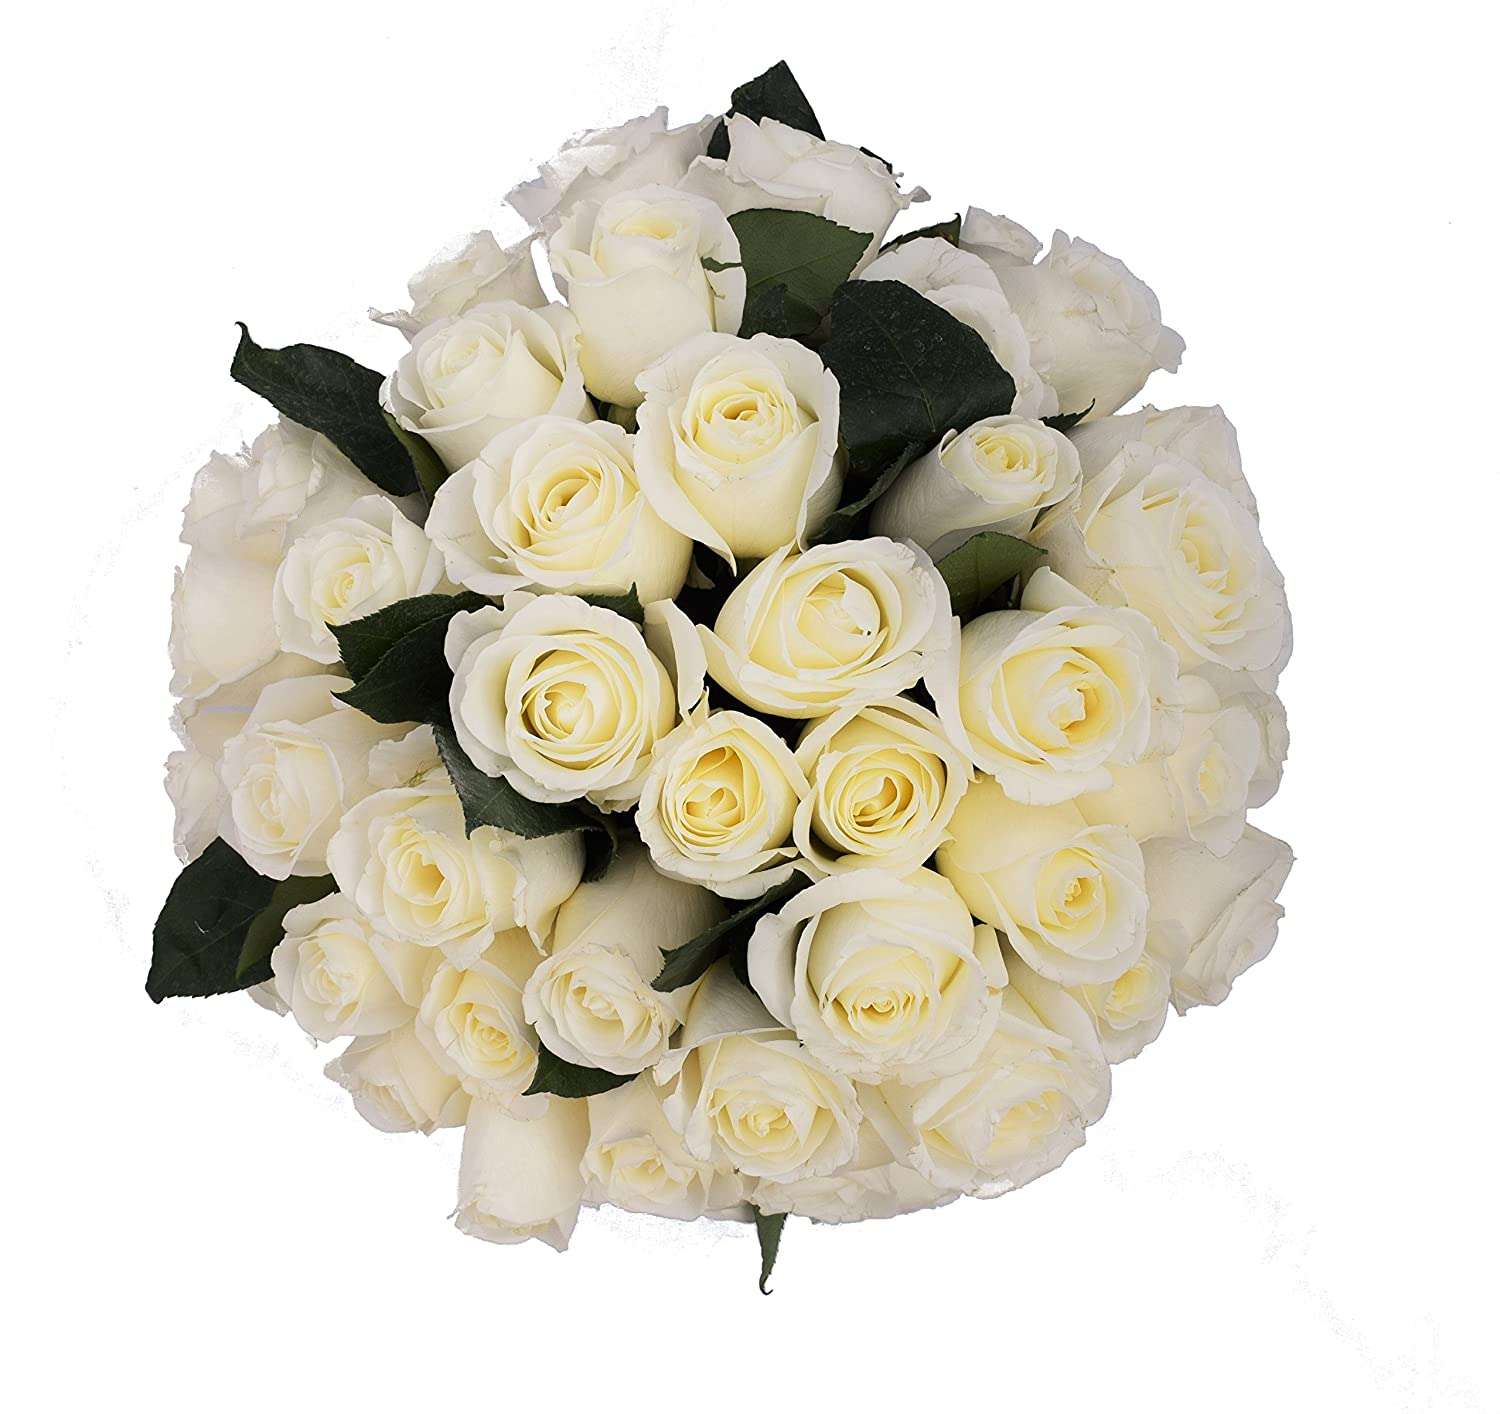 Amazon 50 farm fresh white roses bouquet by justfreshroses amazon 50 farm fresh white roses bouquet by justfreshroses long stem fresh white rose delivery farm fresh flowers grocery gourmet food izmirmasajfo